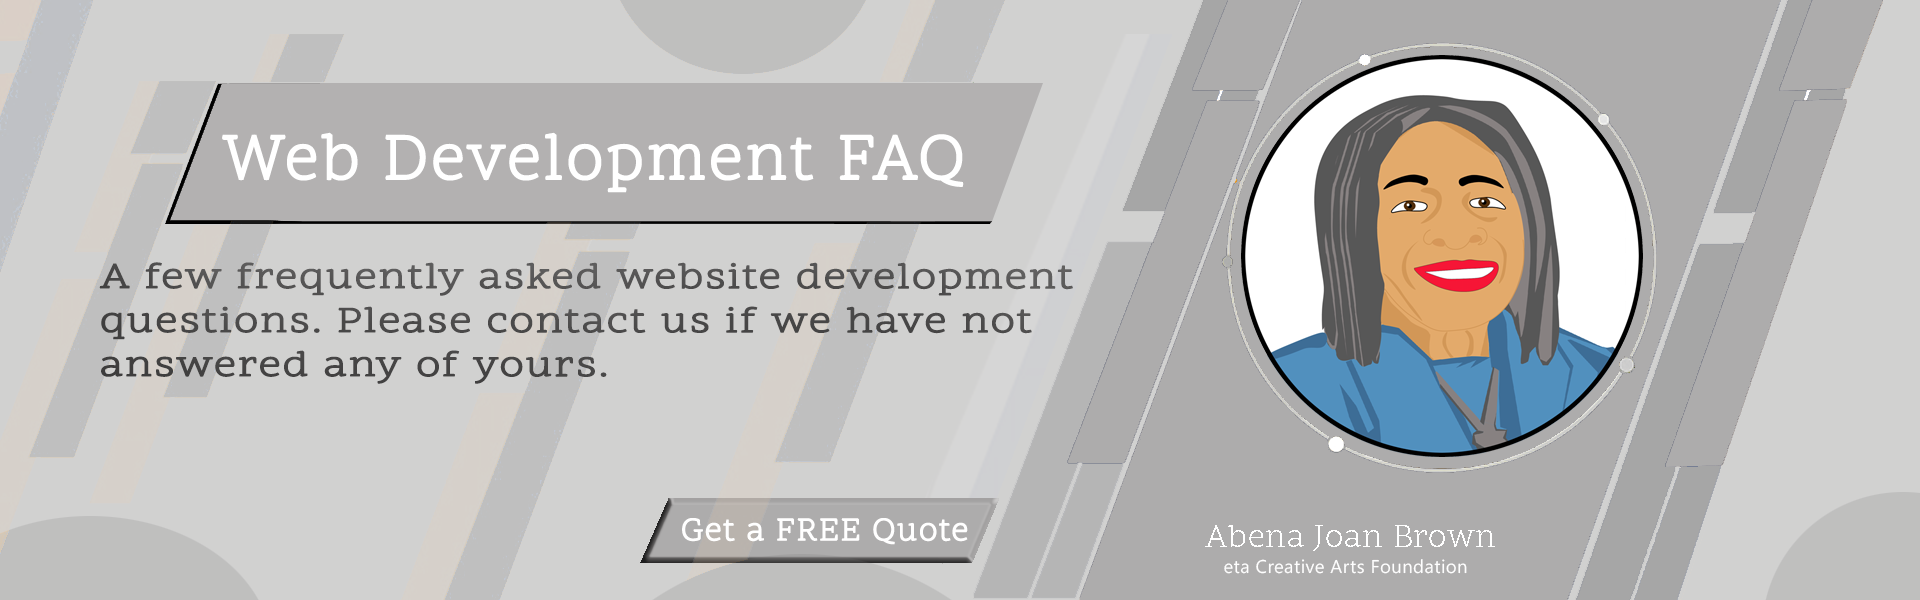 web-development-faqs